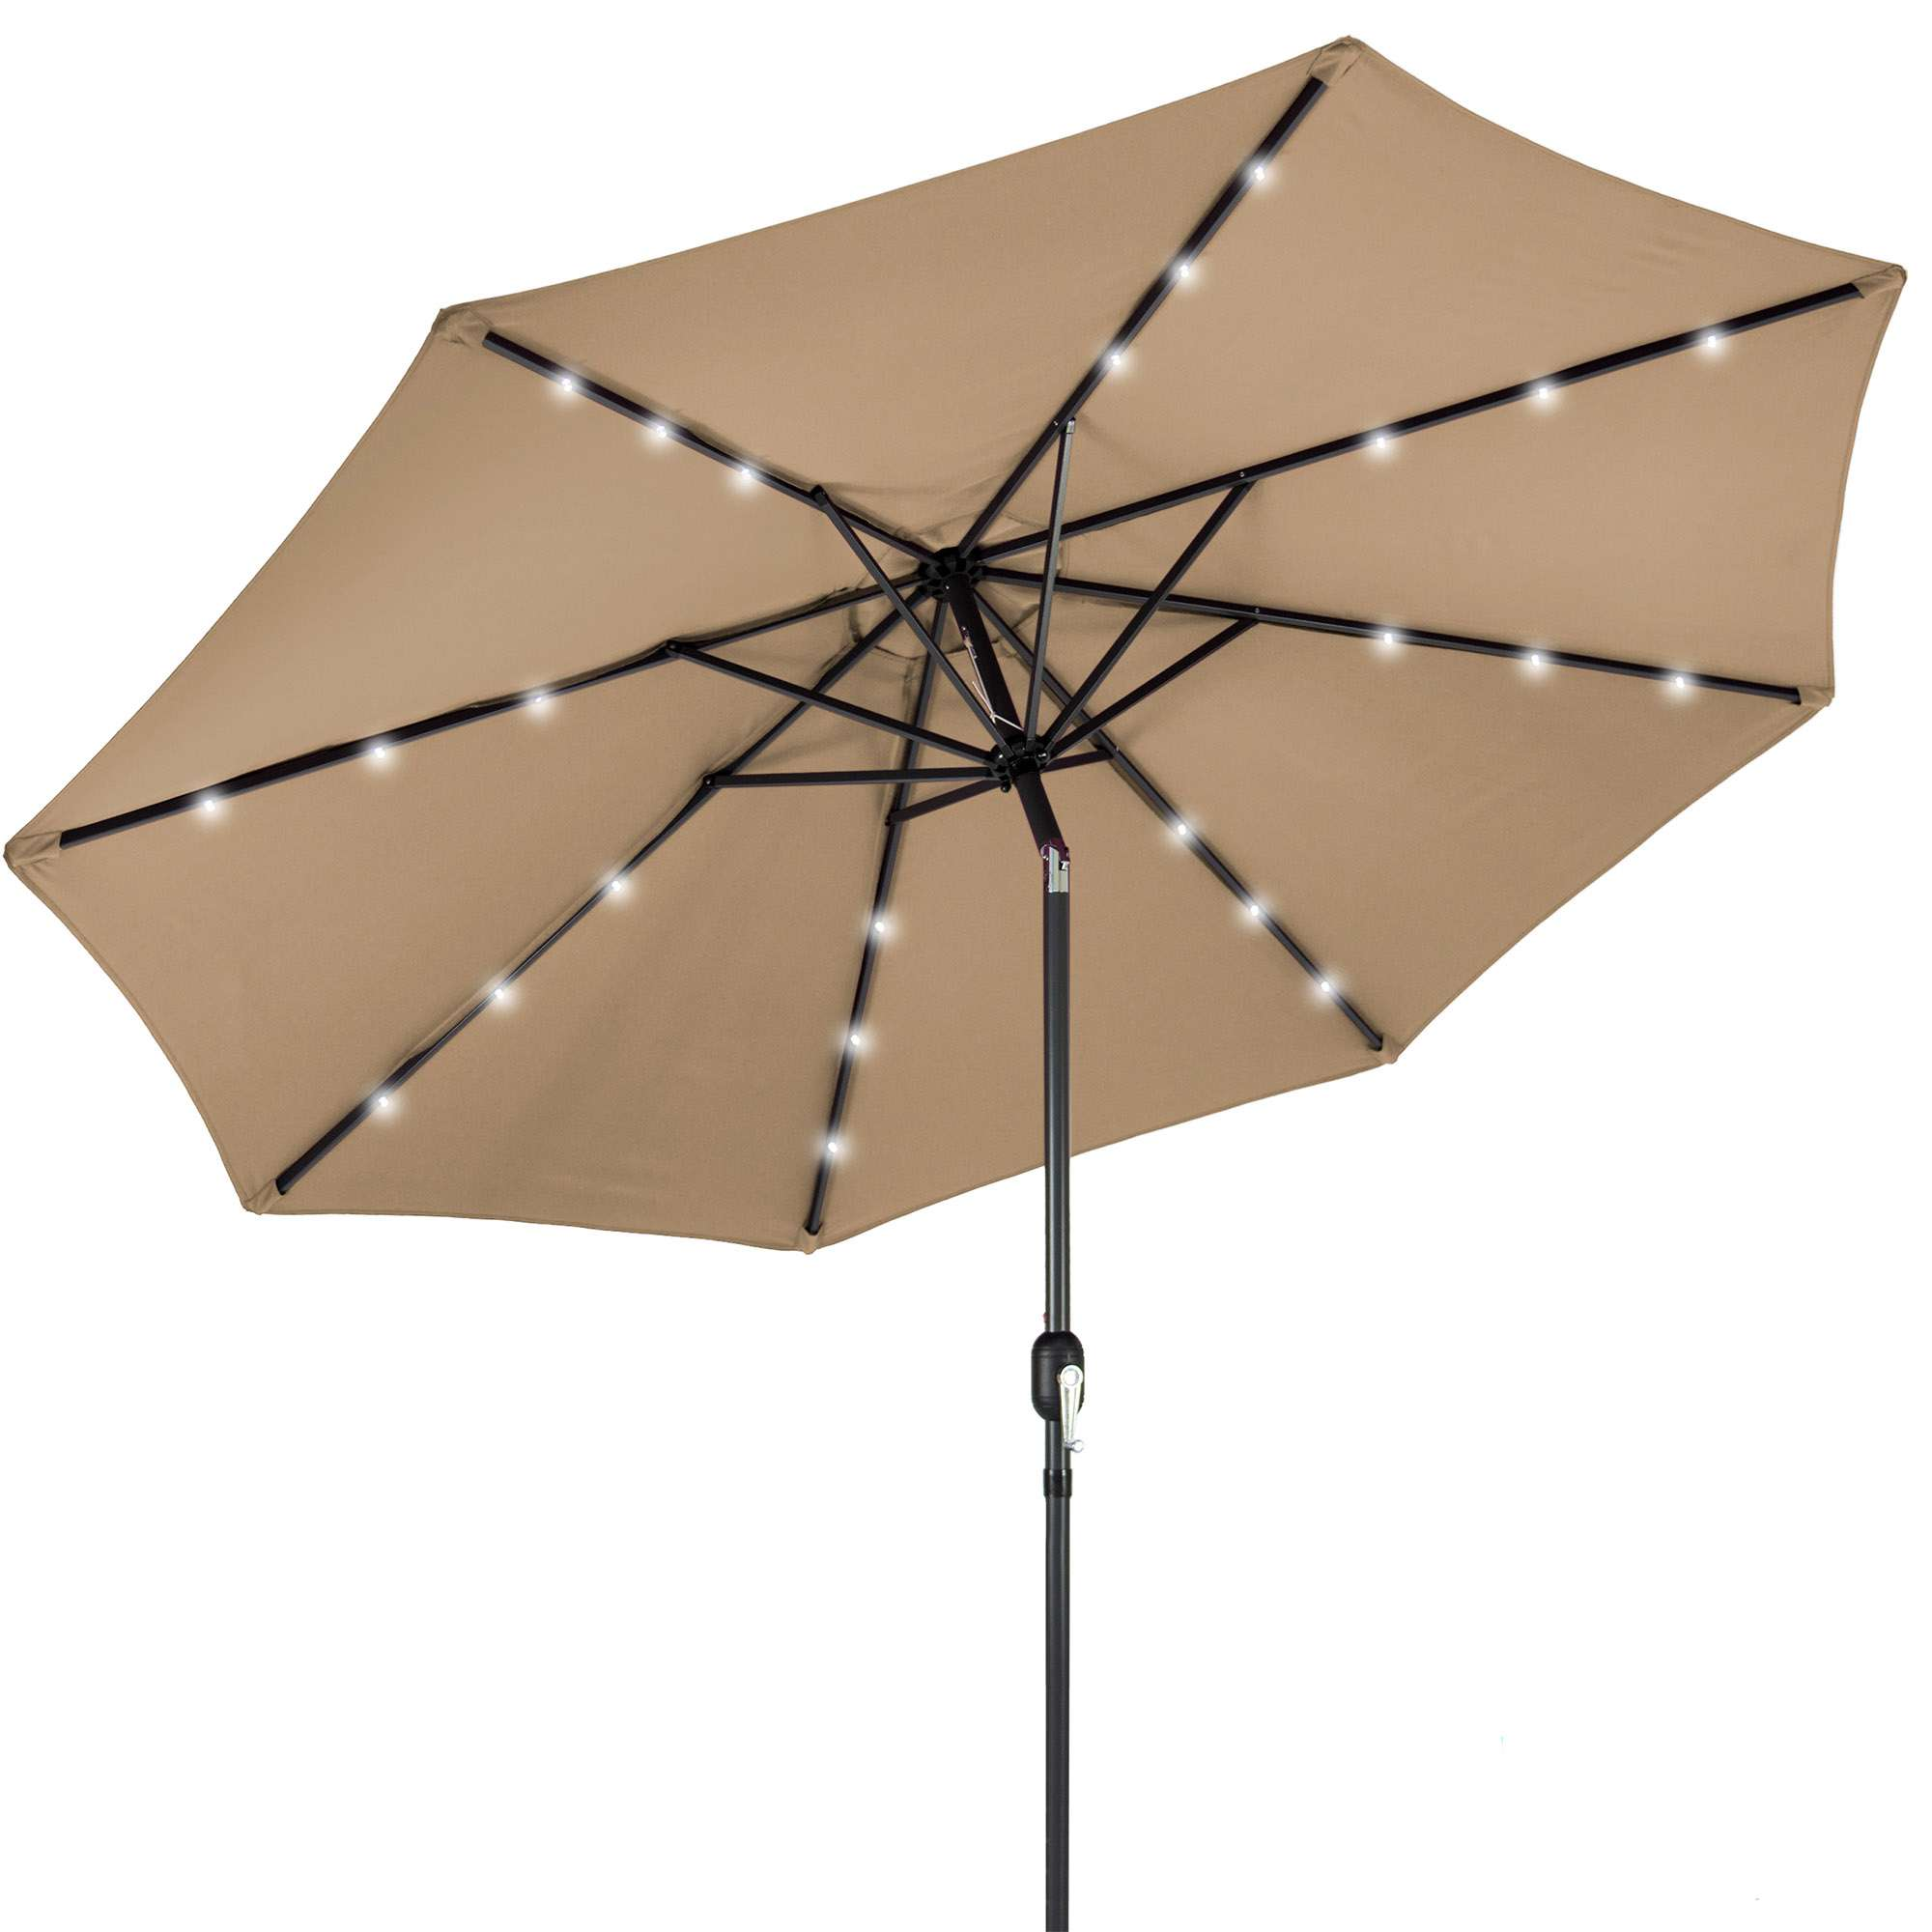 Best Choice Products 10ft Solar LED Lighted Patio Umbrella w/ Tilt Adjustment, Fade-Resistant Fabric